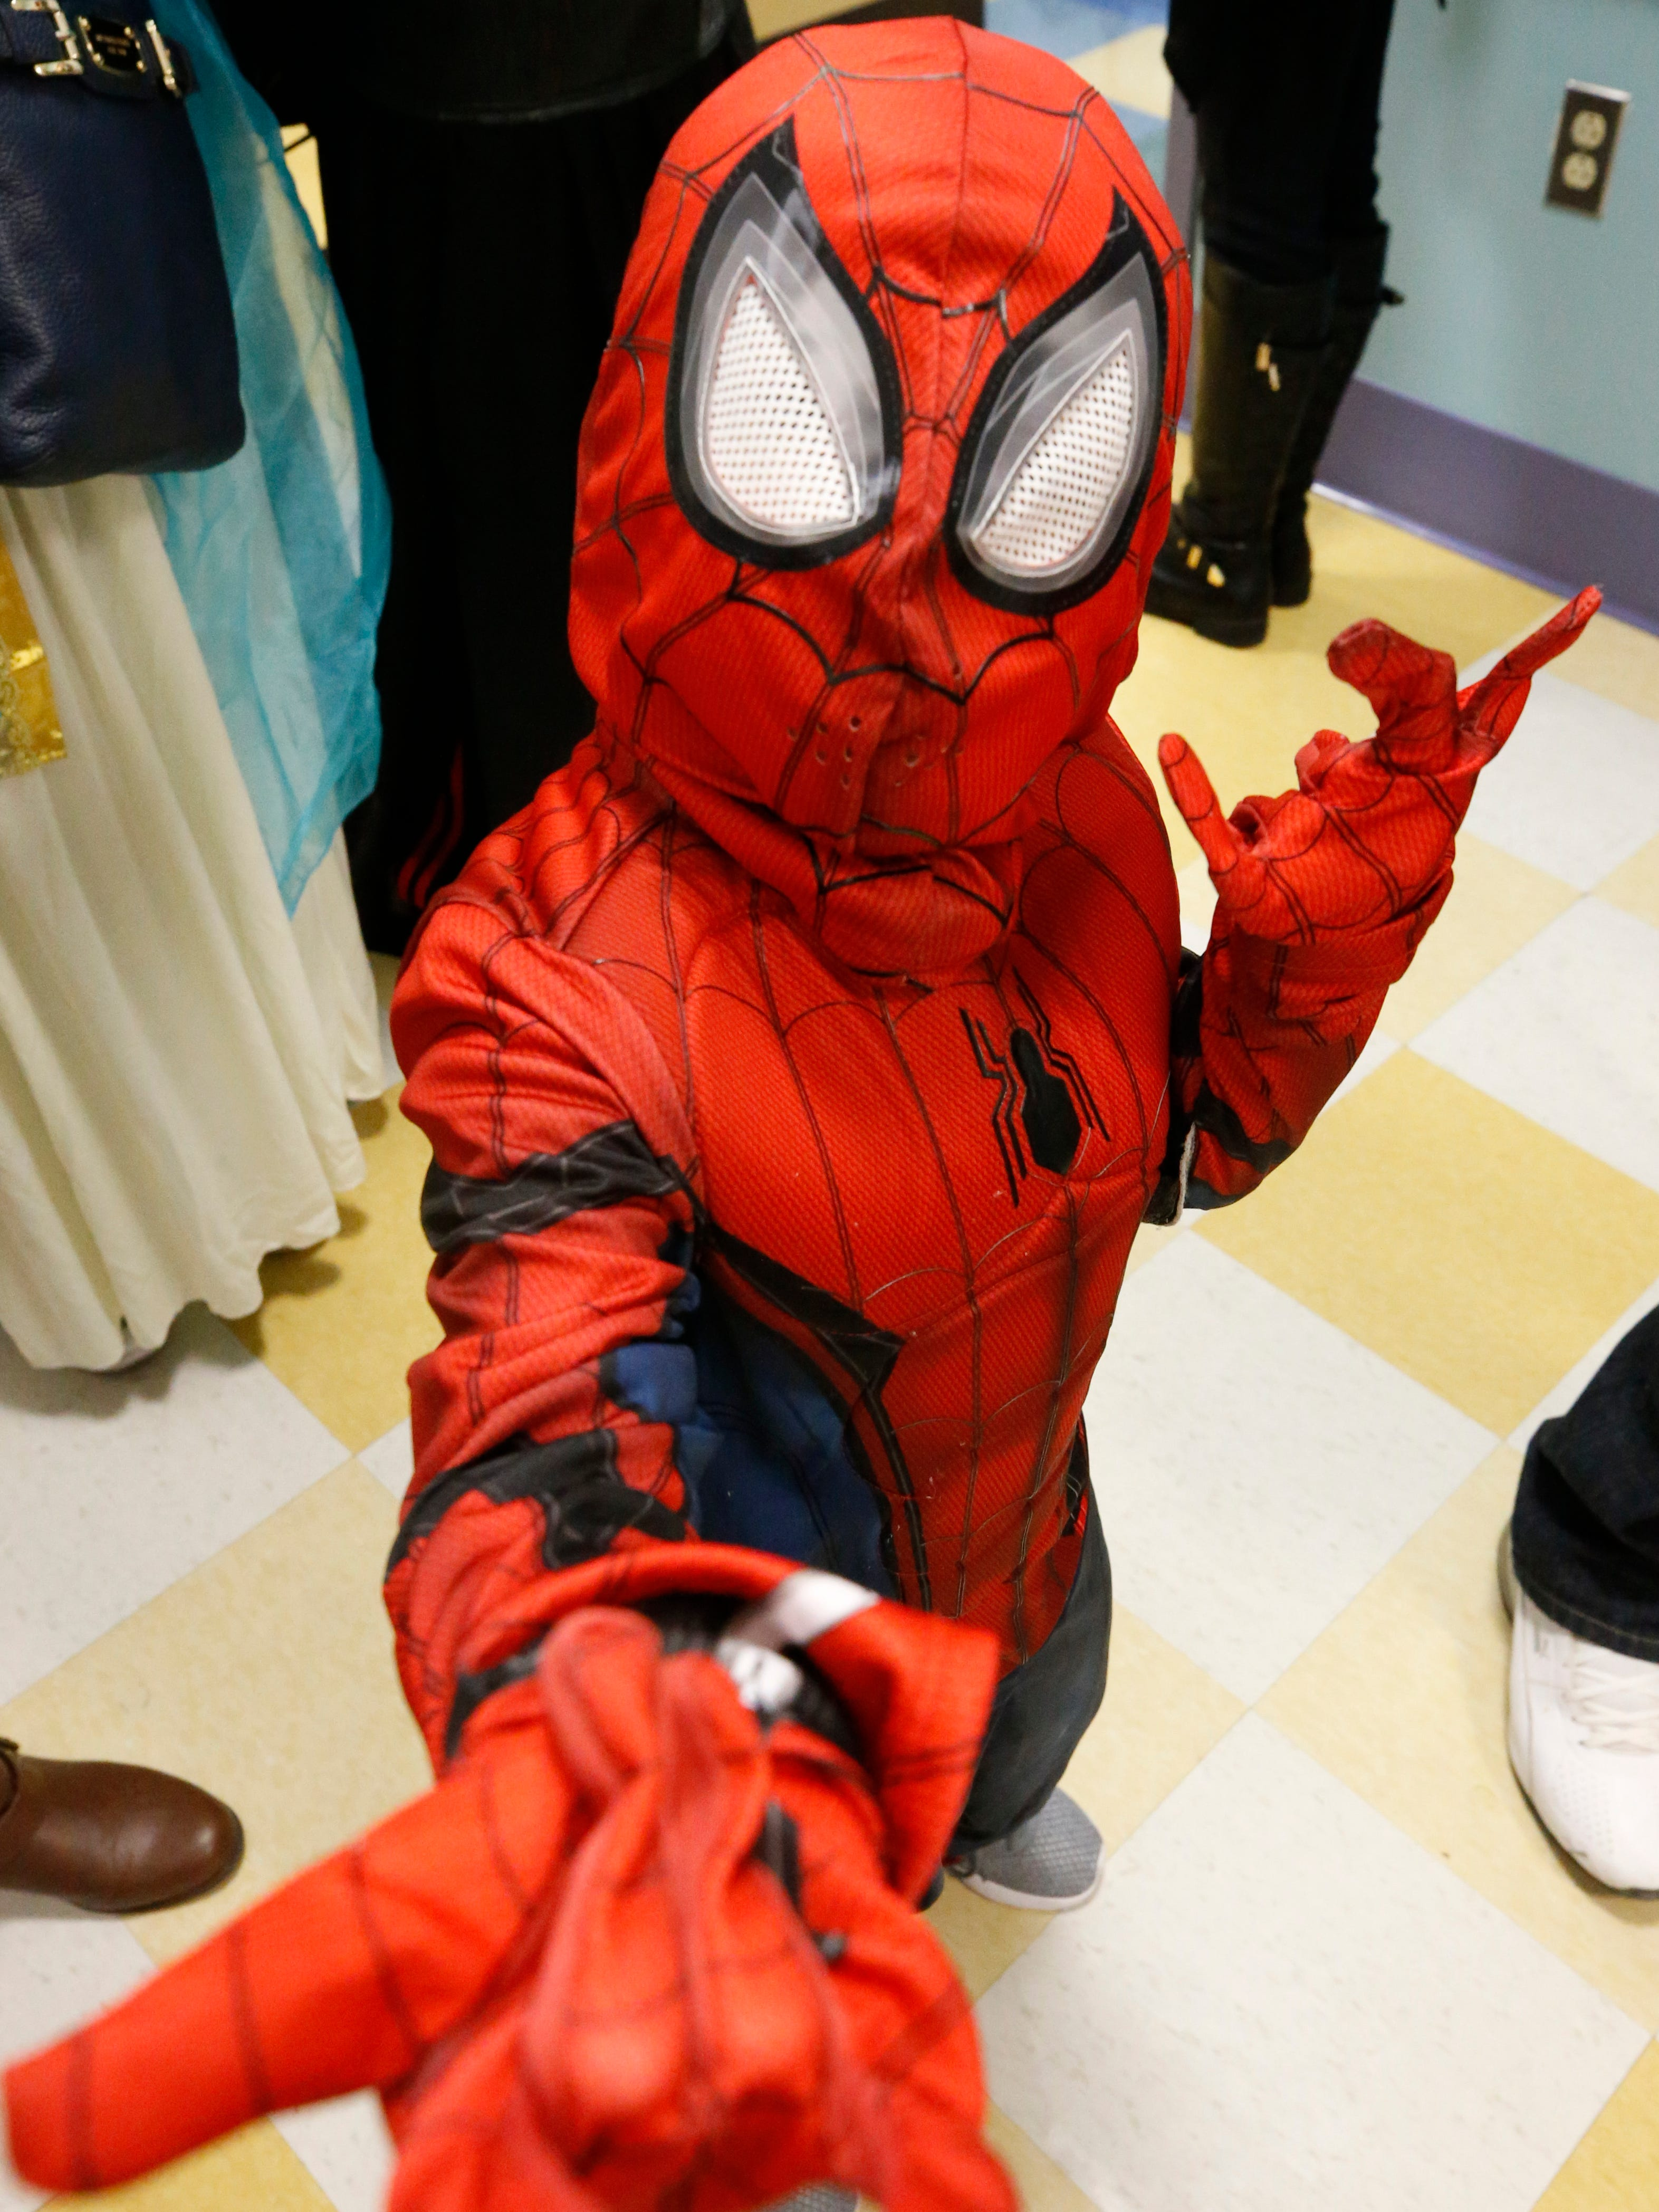 Halloween For Kids Las Cruces 2020 Halloween 2020: What you need to celebrate in El Paso amid COVID 19